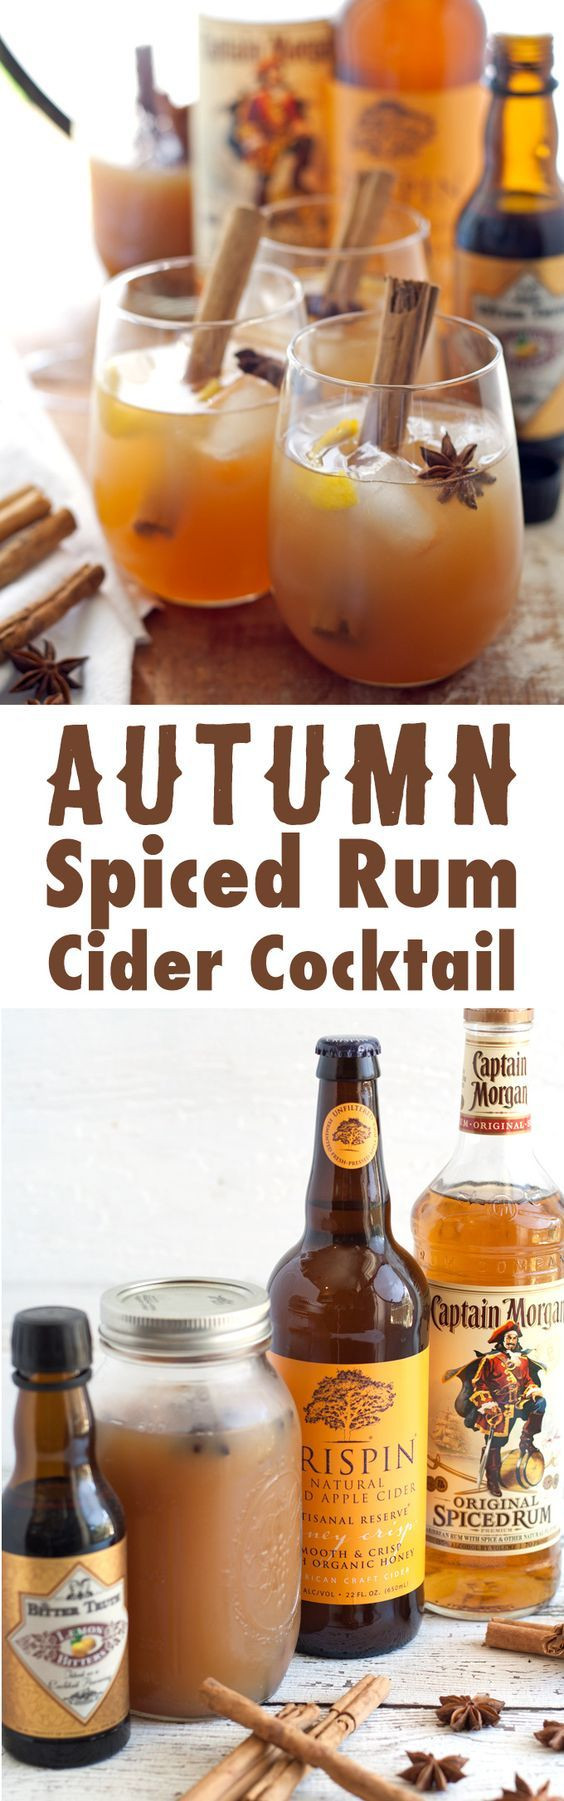 Fall Rum Drinks  17 Best images about Drinks on Pinterest